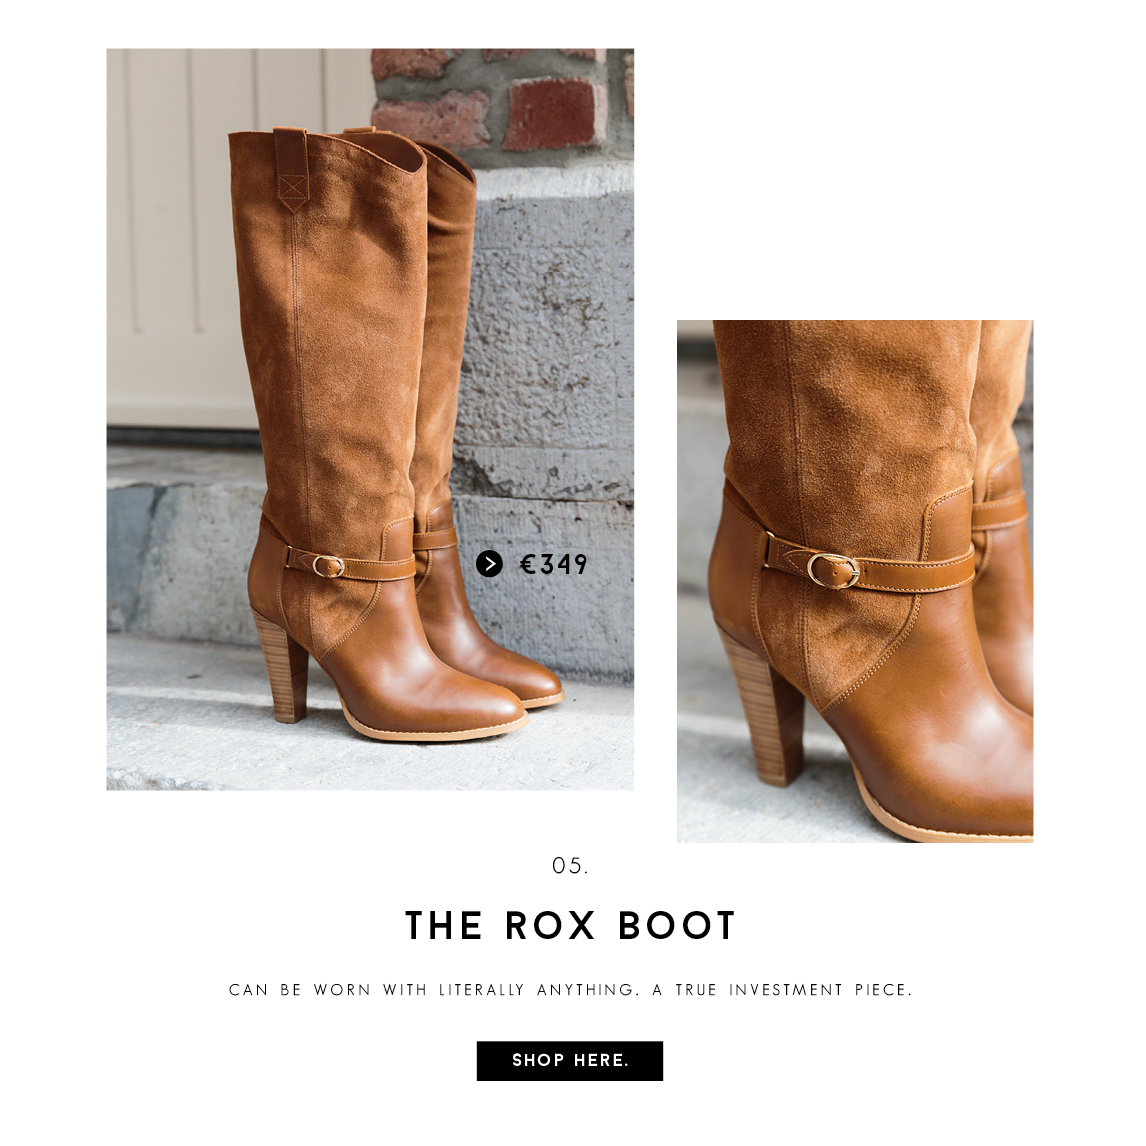 http://shoplily.be/collections/fall-getaway/products/rox-boot-naturel?variant=31692713095